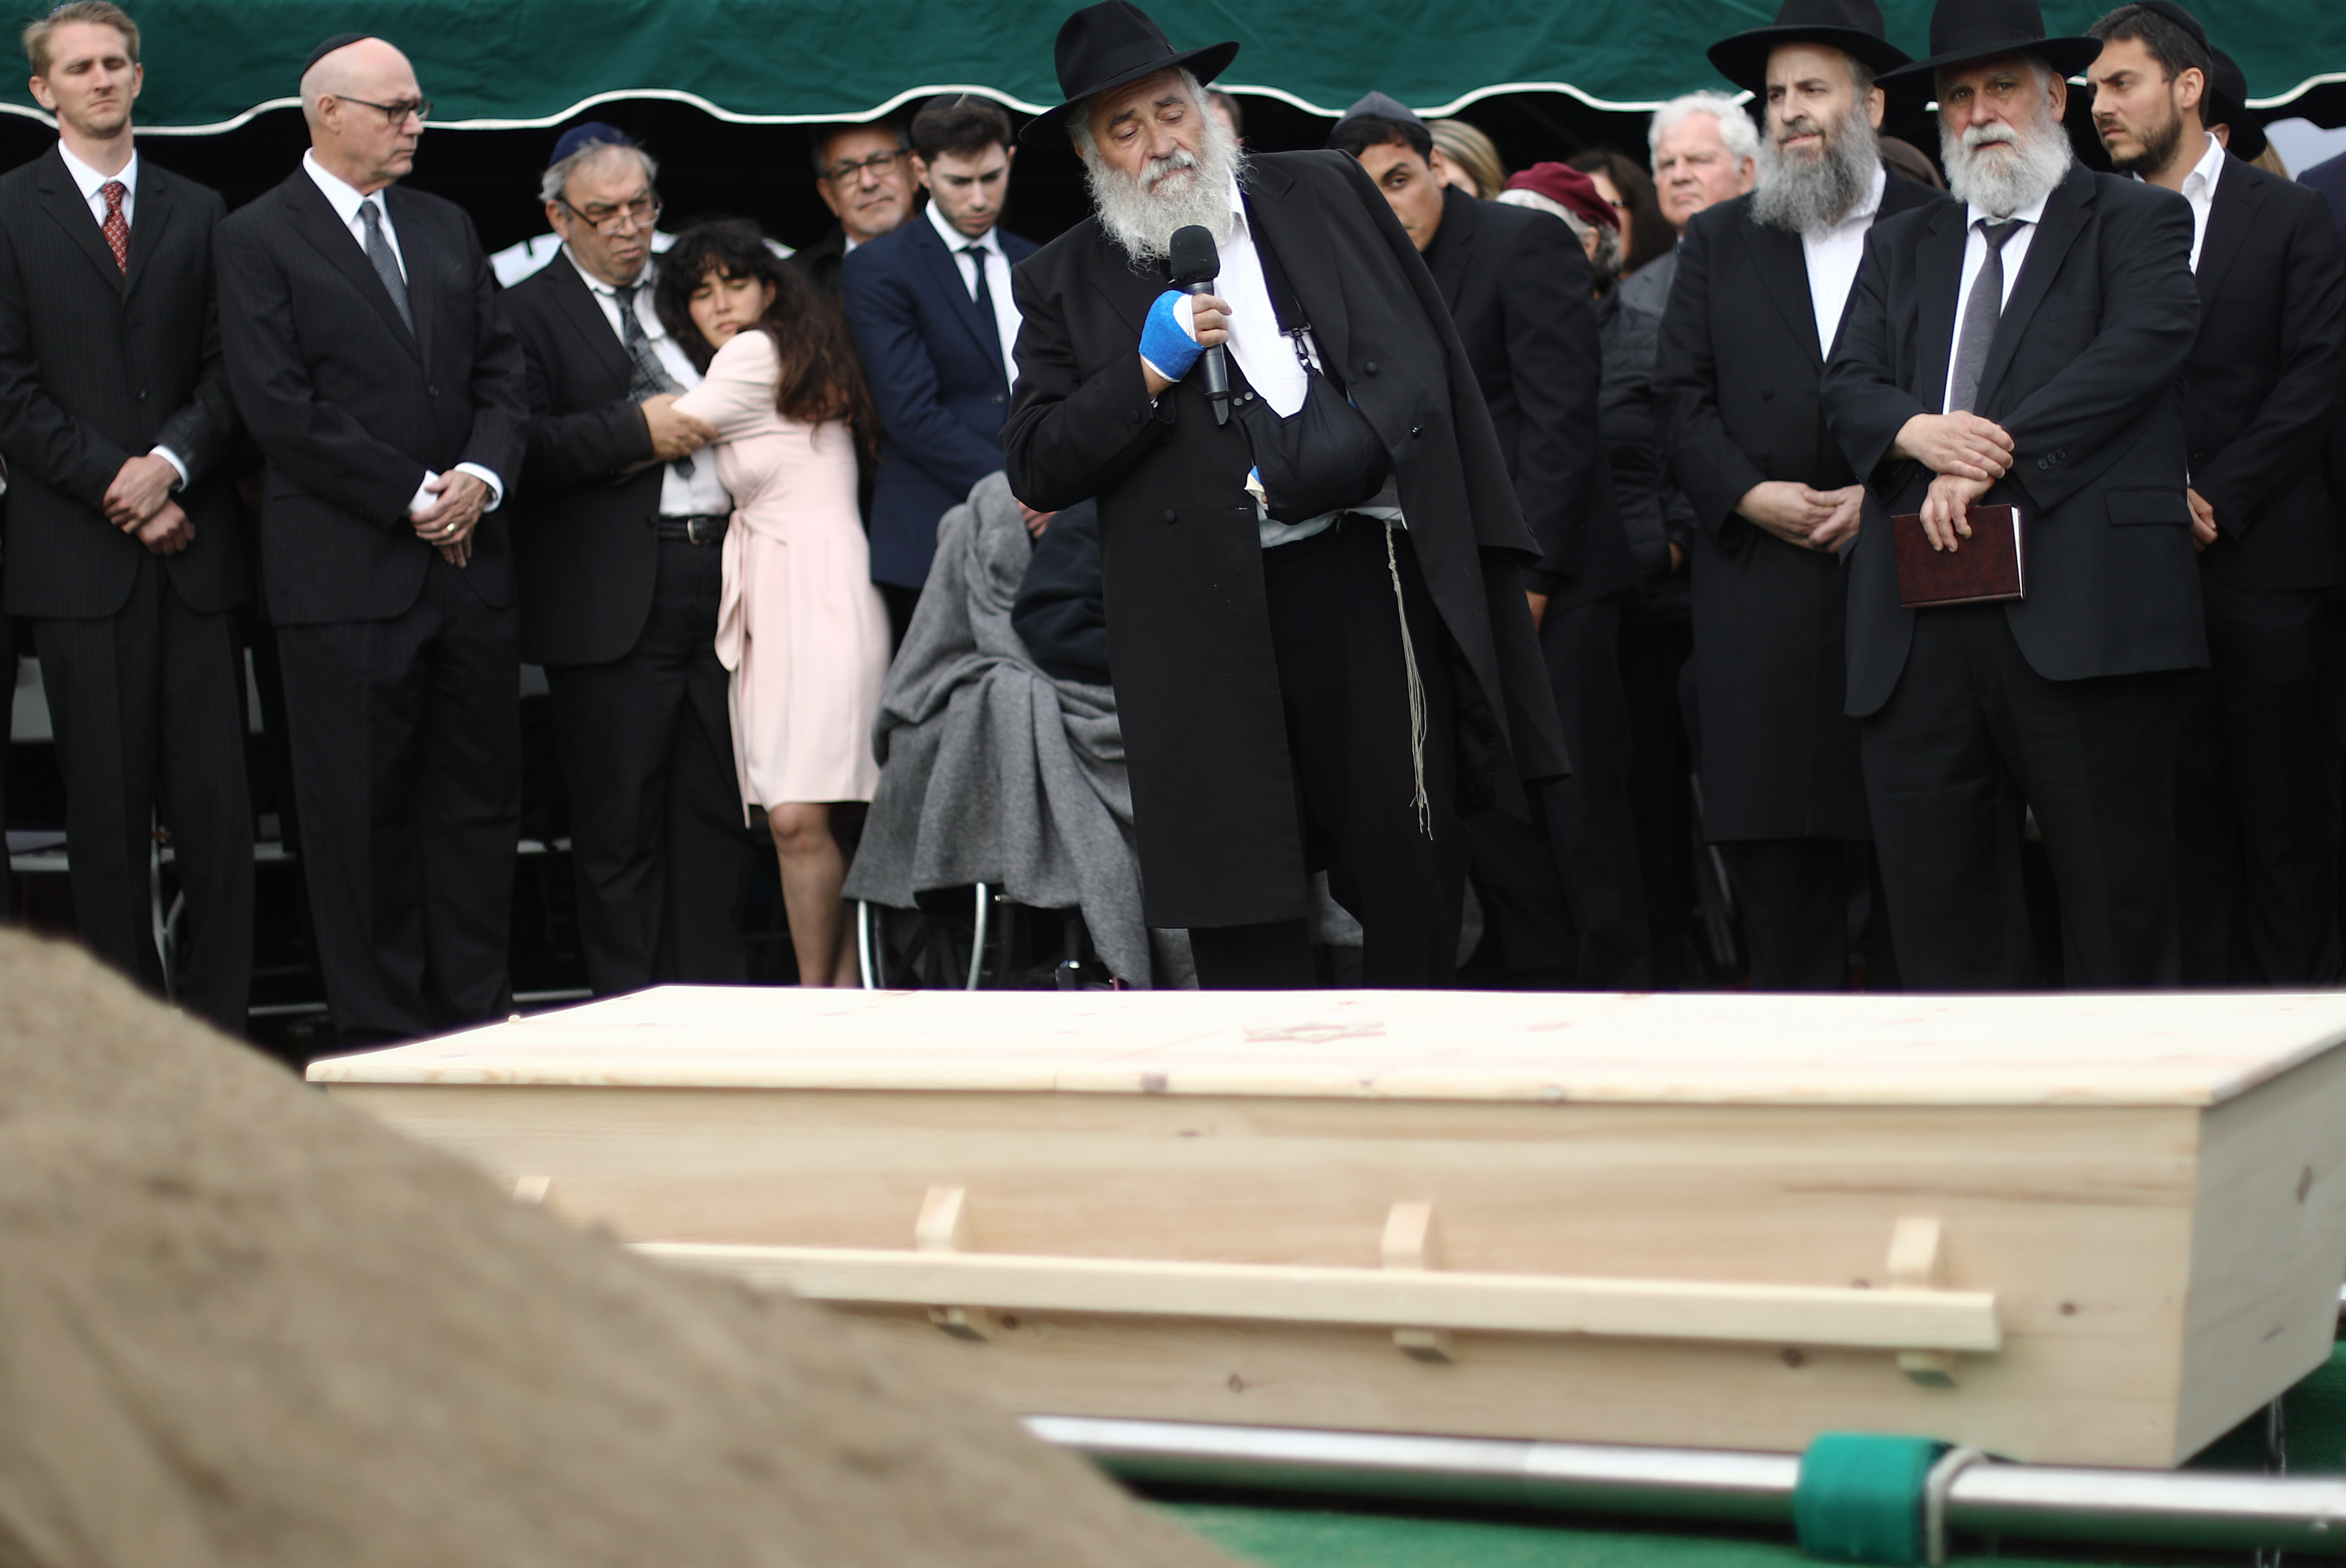 SAN DIEGO, CALIFORNIA - APRIL 29: Hannah Kaye (LEFT CENTER), daughter of shooting victim Lori Gilbert Kaye, is held by her father Howard Kaye as wounded Rabbi Yisroel Goldstein (CENTER) speaks above the casket during a graveside service on April 29, 2019 in San Diego, California. (Photo by Mario Tama/Getty Images)